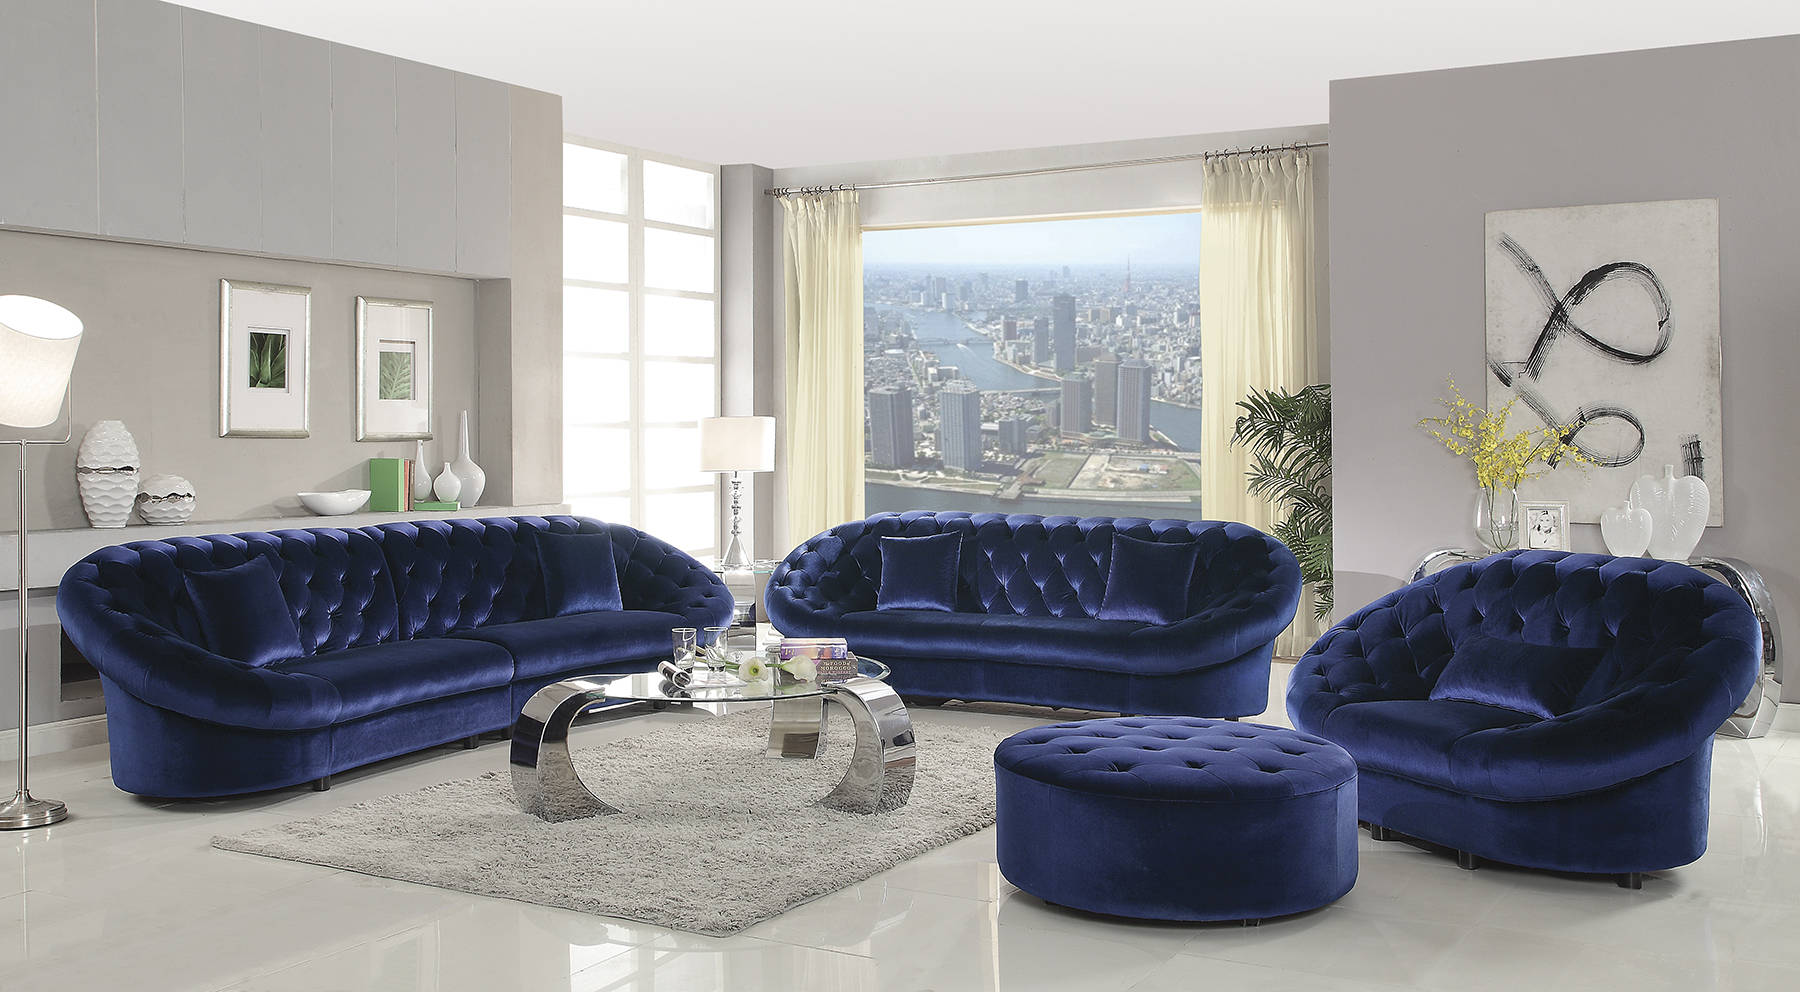 Merveilleux Romanus Traditional Royal Blue Velvet Tufted 4pc Living Room Set Click To  Enlarge ...